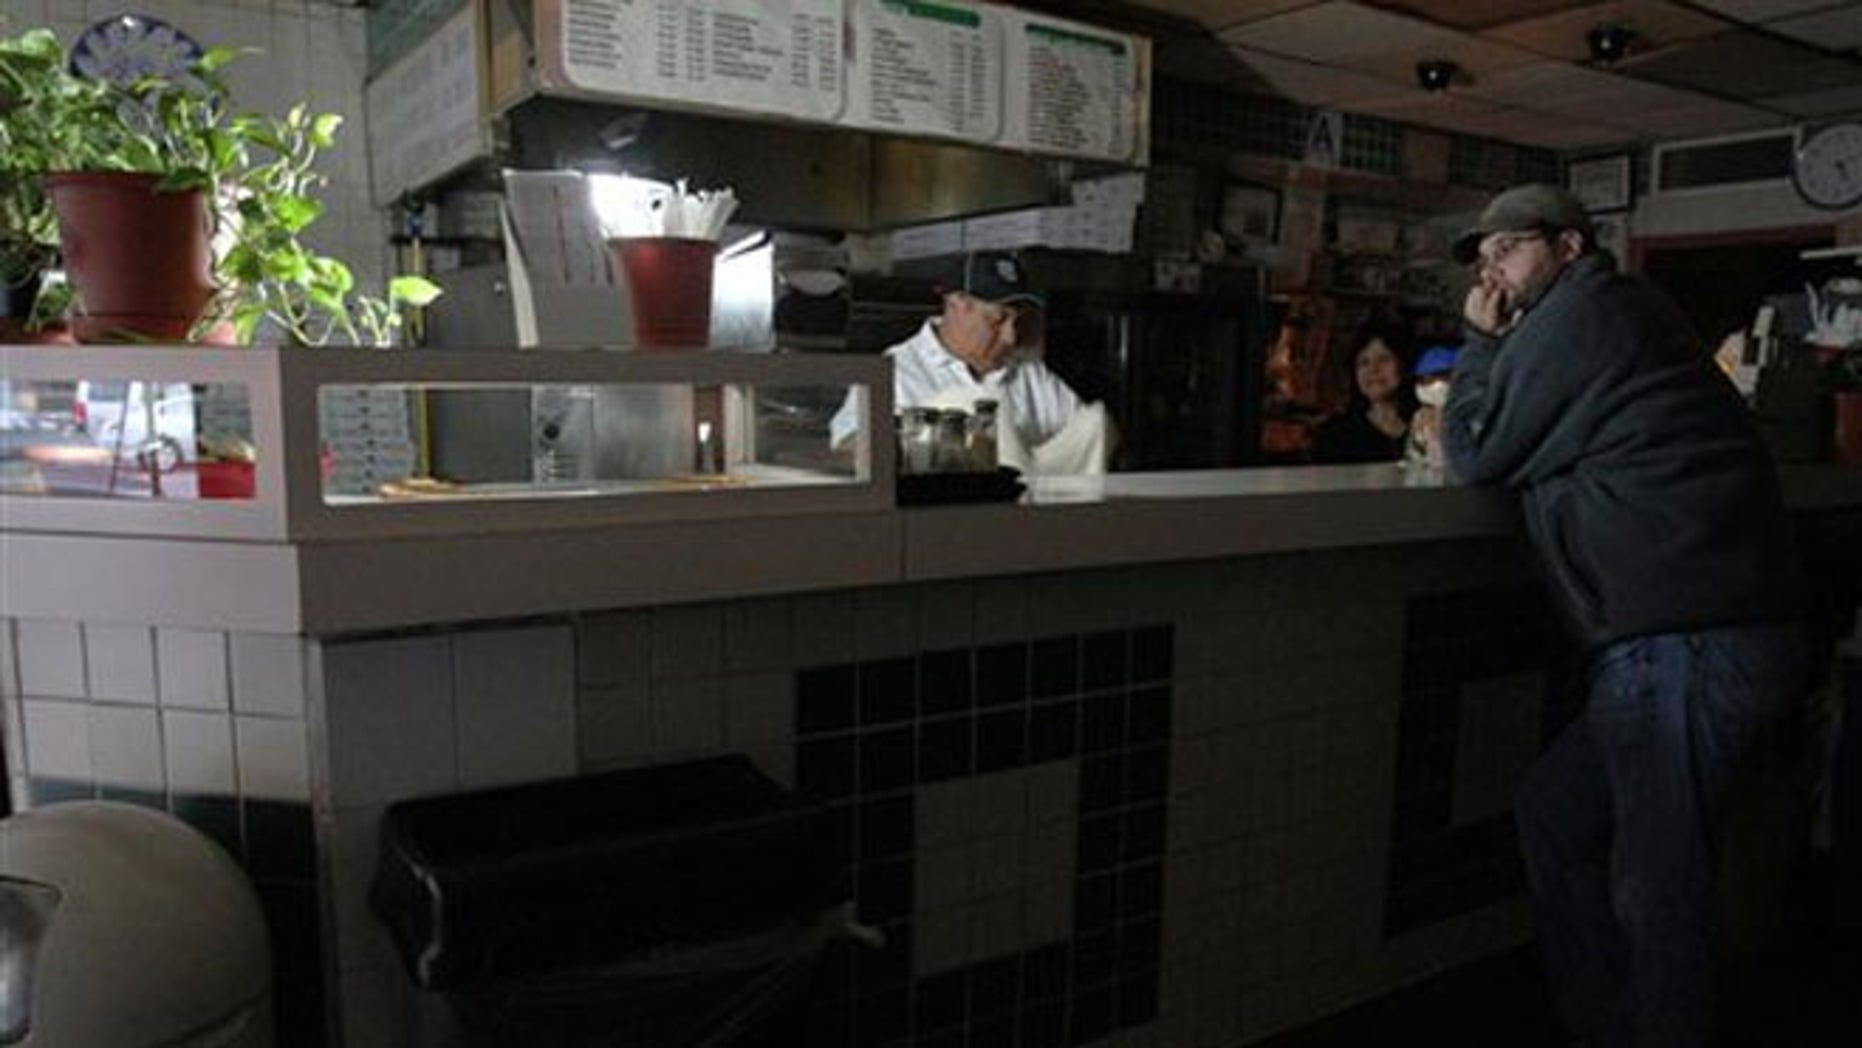 Oct. 31, 2012: Leigh Dworkin, right, waits for a slice of pizza as Carlos Quizhplema, left, and Rosa Rosas work behind the counter at Frank's Trattoria, in New York.